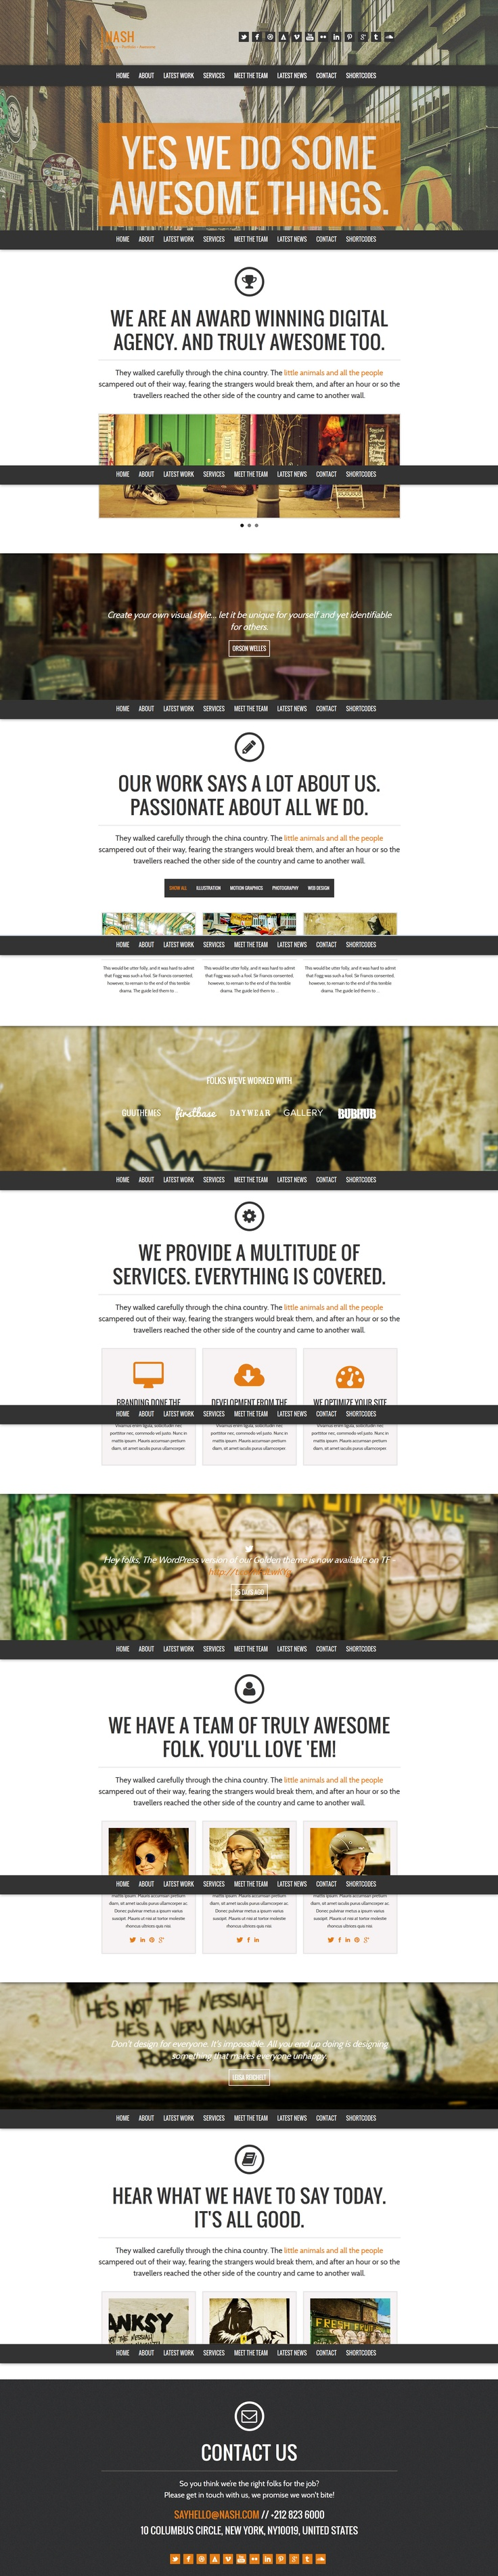 42 best Awesome Wordpress Templates images on Pinterest   Templates ...